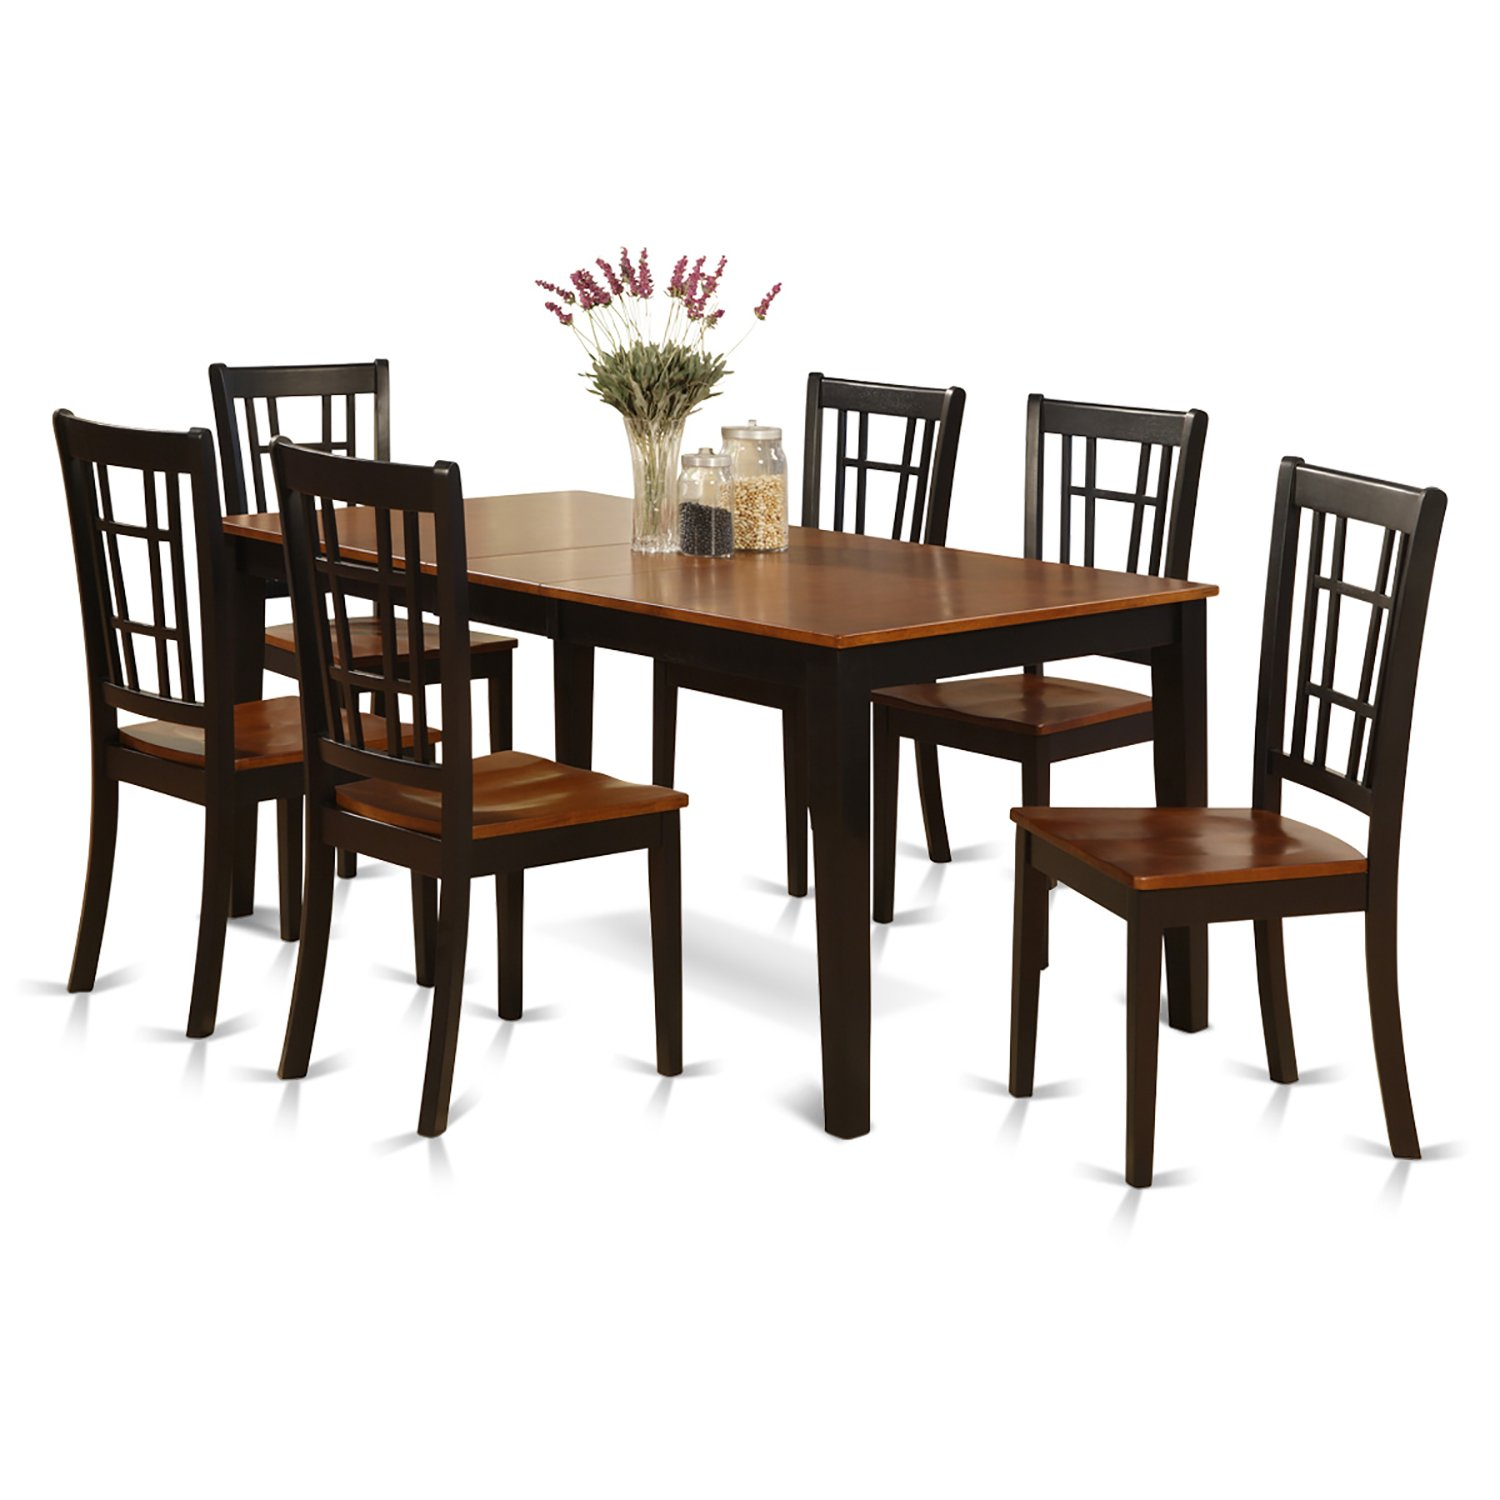 East West Furniture NICO7-BLK-W 7-Piece Formal Dining Table Set  sc 1 st  Amazon.com & Cherry Dining Tables: Amazon.com